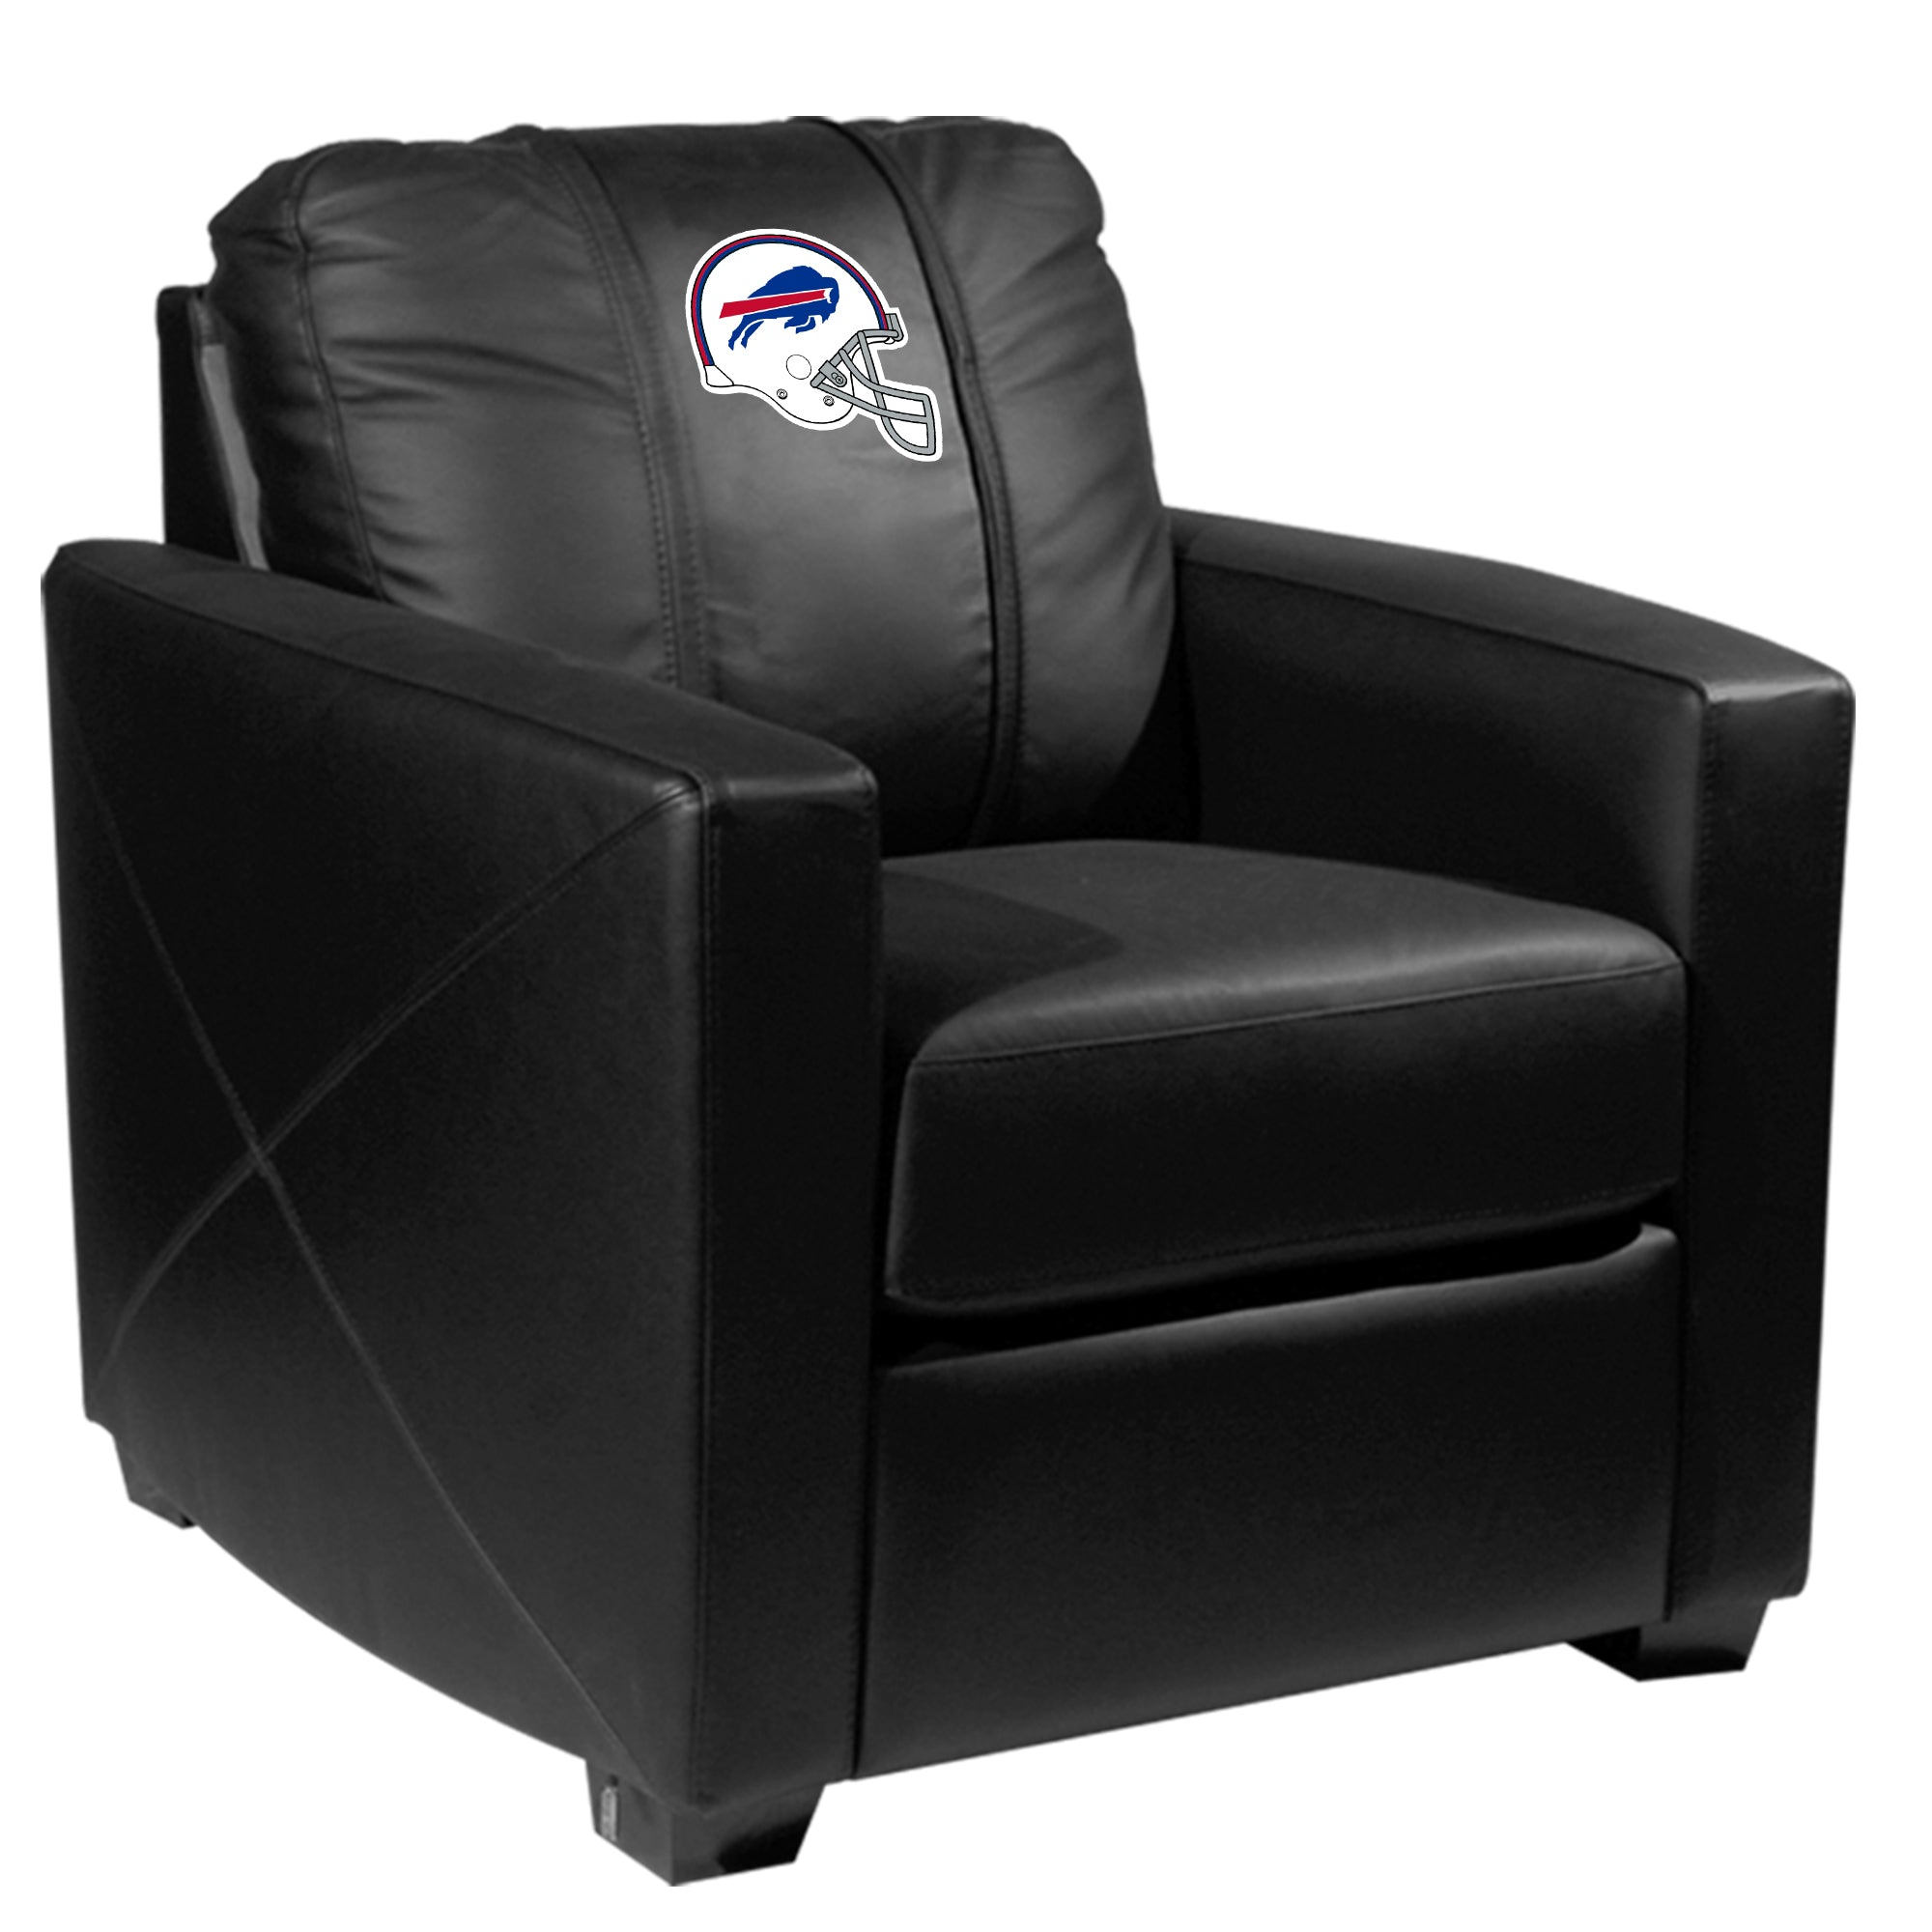 Silver Club Chair with  Buffalo Bills Helmet Logo